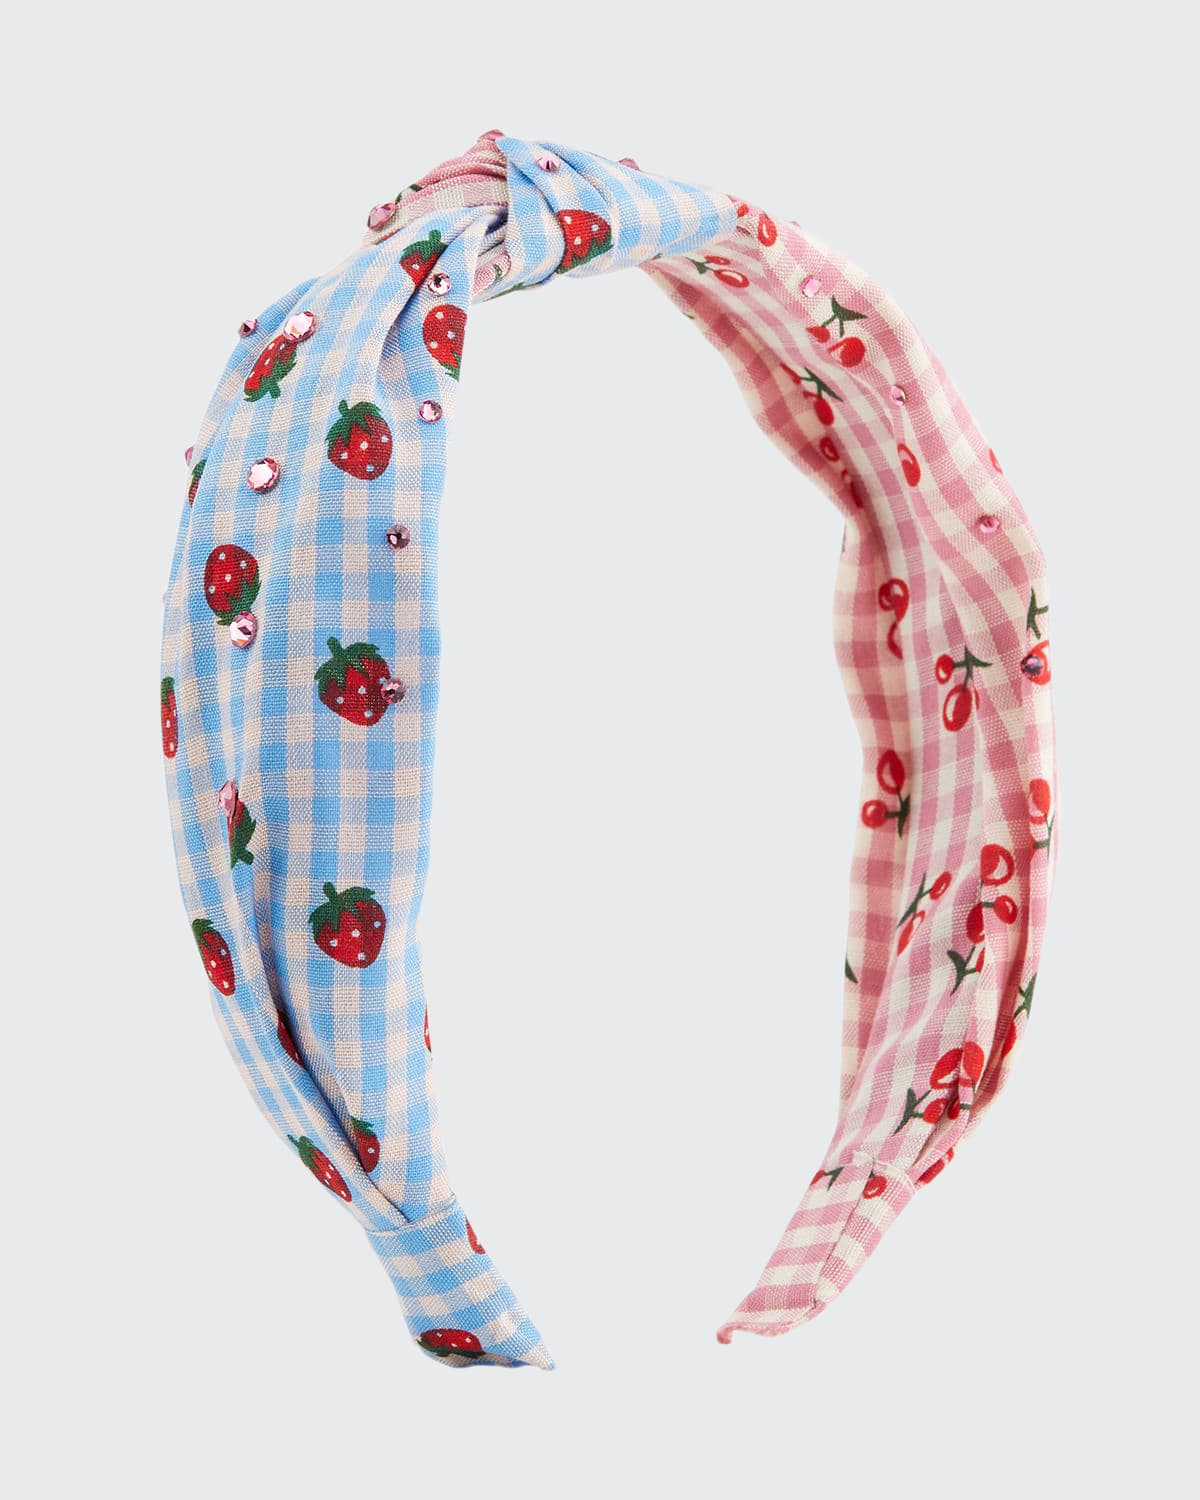 Girl's Gingham Cherry-Print Crystal Knotted Headband